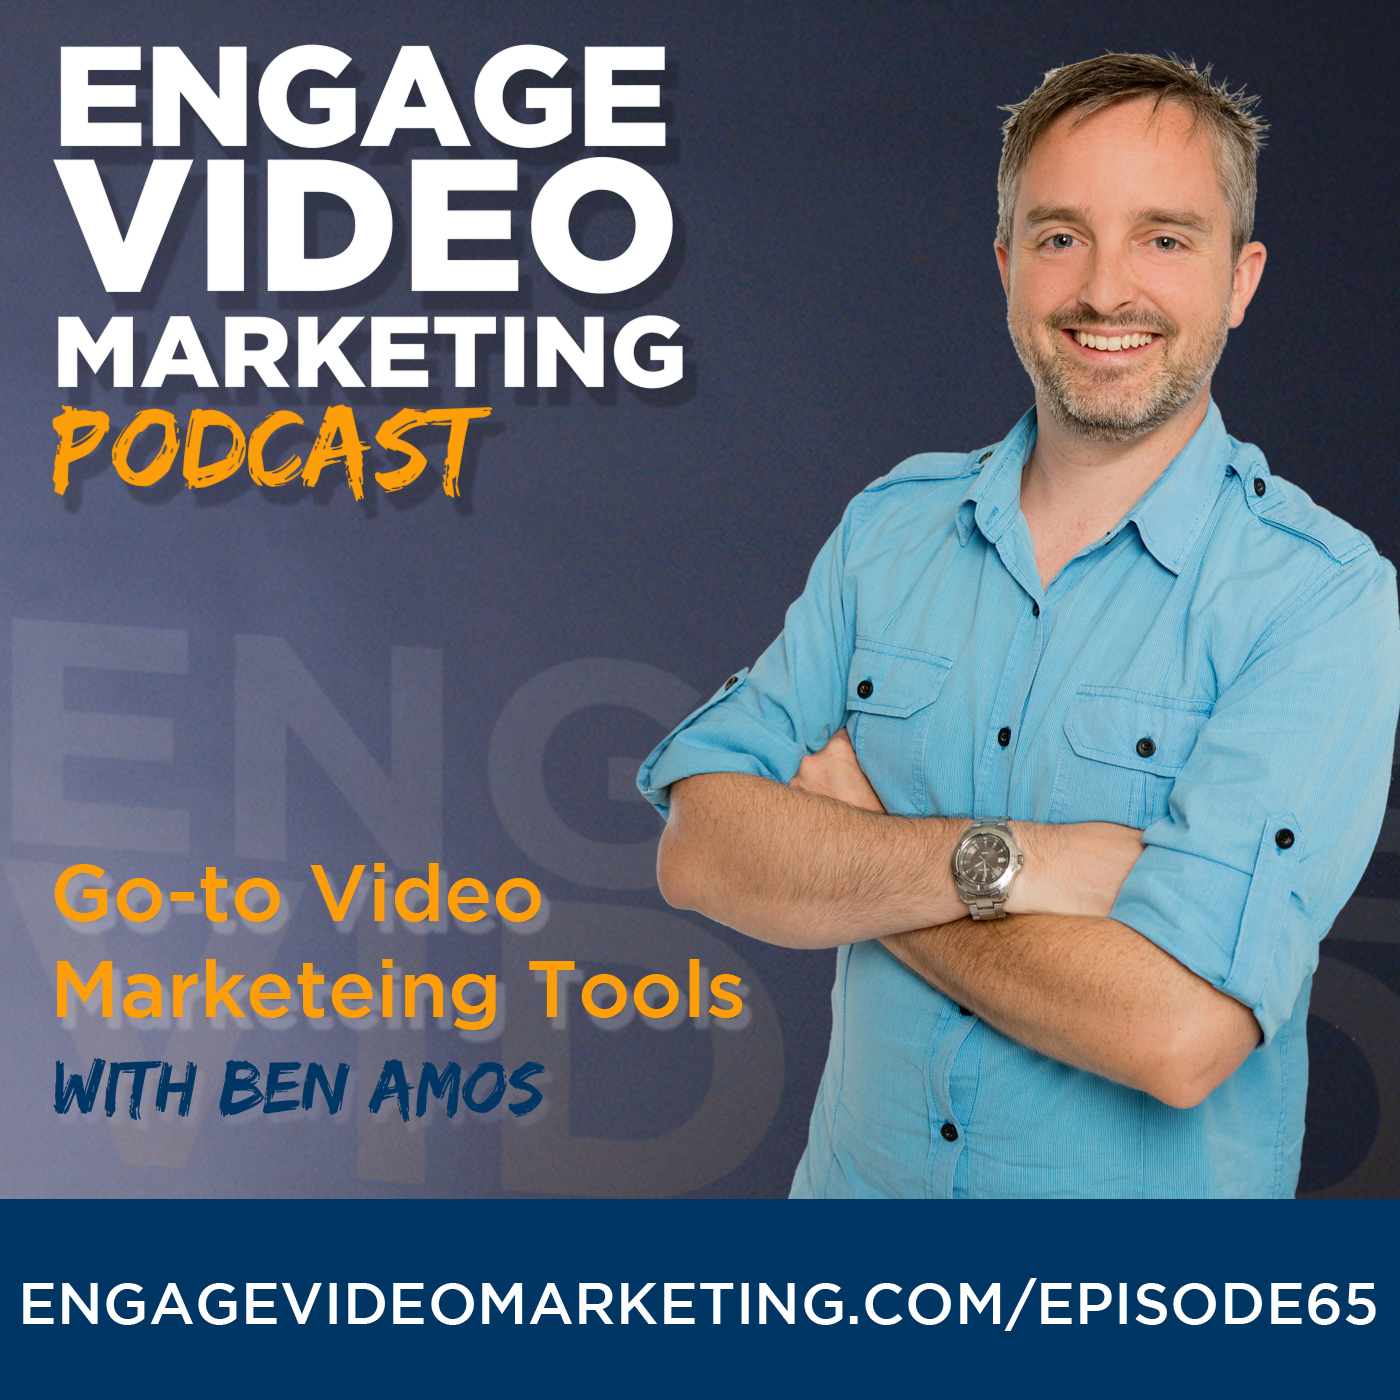 Go-to Video Marketing Tools